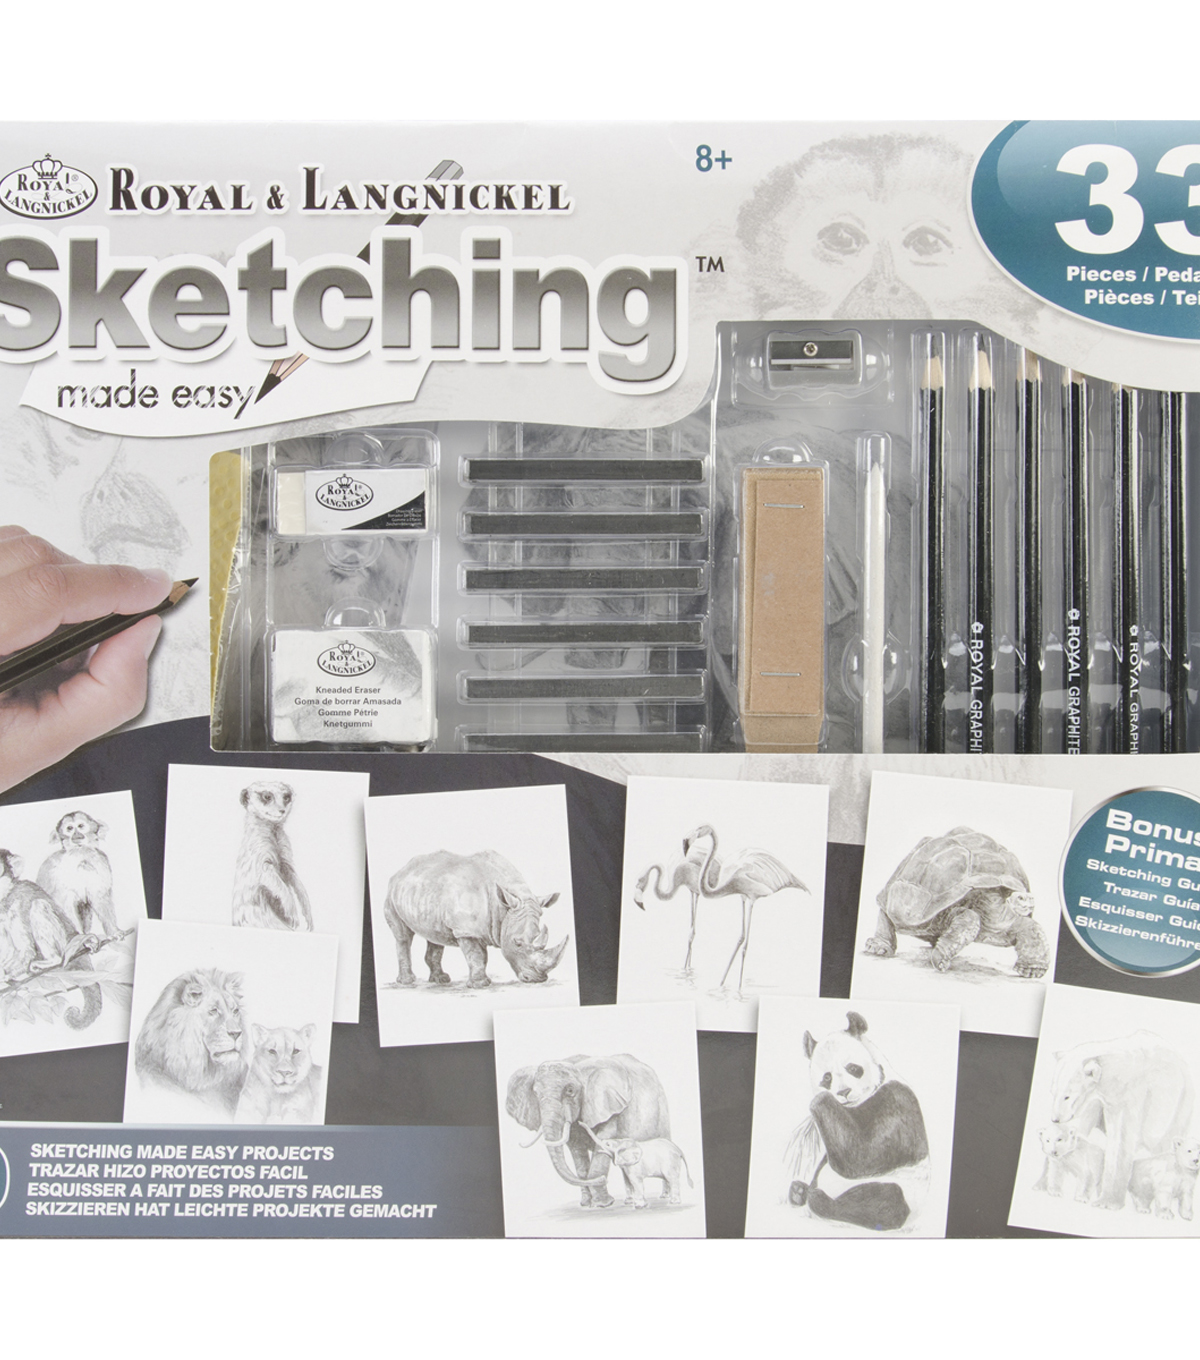 Royal & Langnickel Sketching Made Easy Activity Set